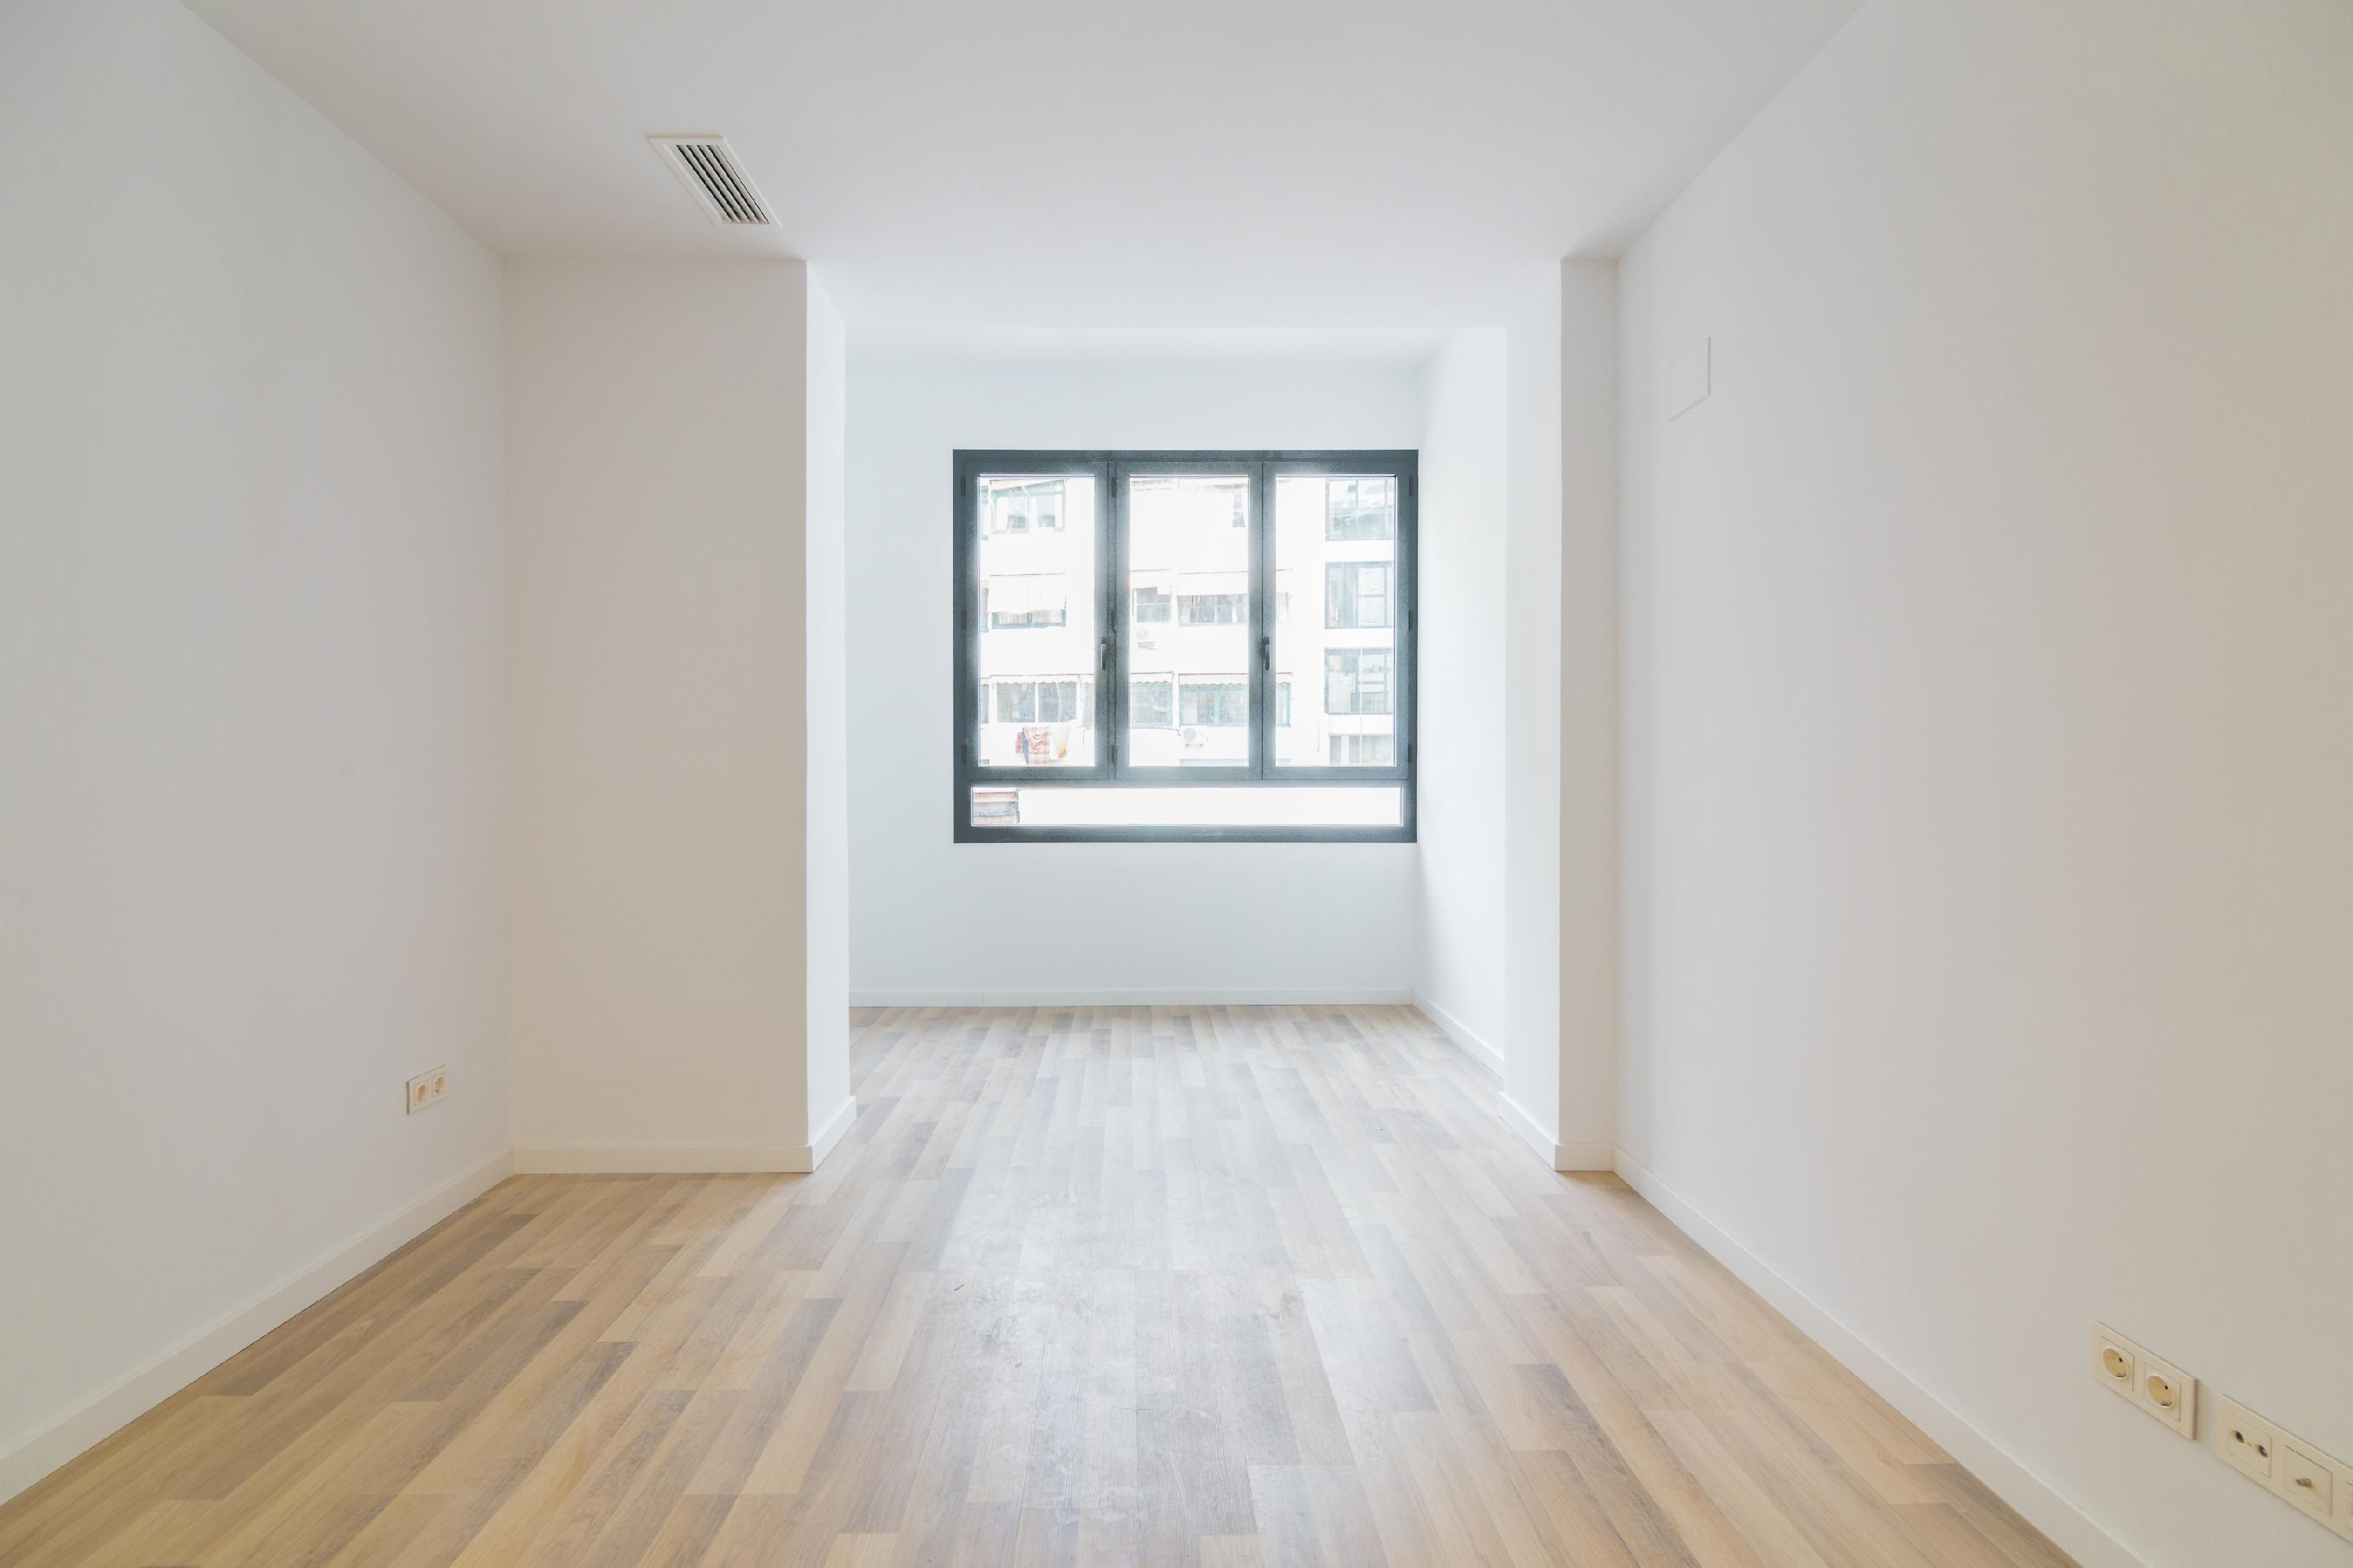 220652 Apartment for sale in Sarrià-Sant Gervasi, Sant Gervasi-Galvany 7